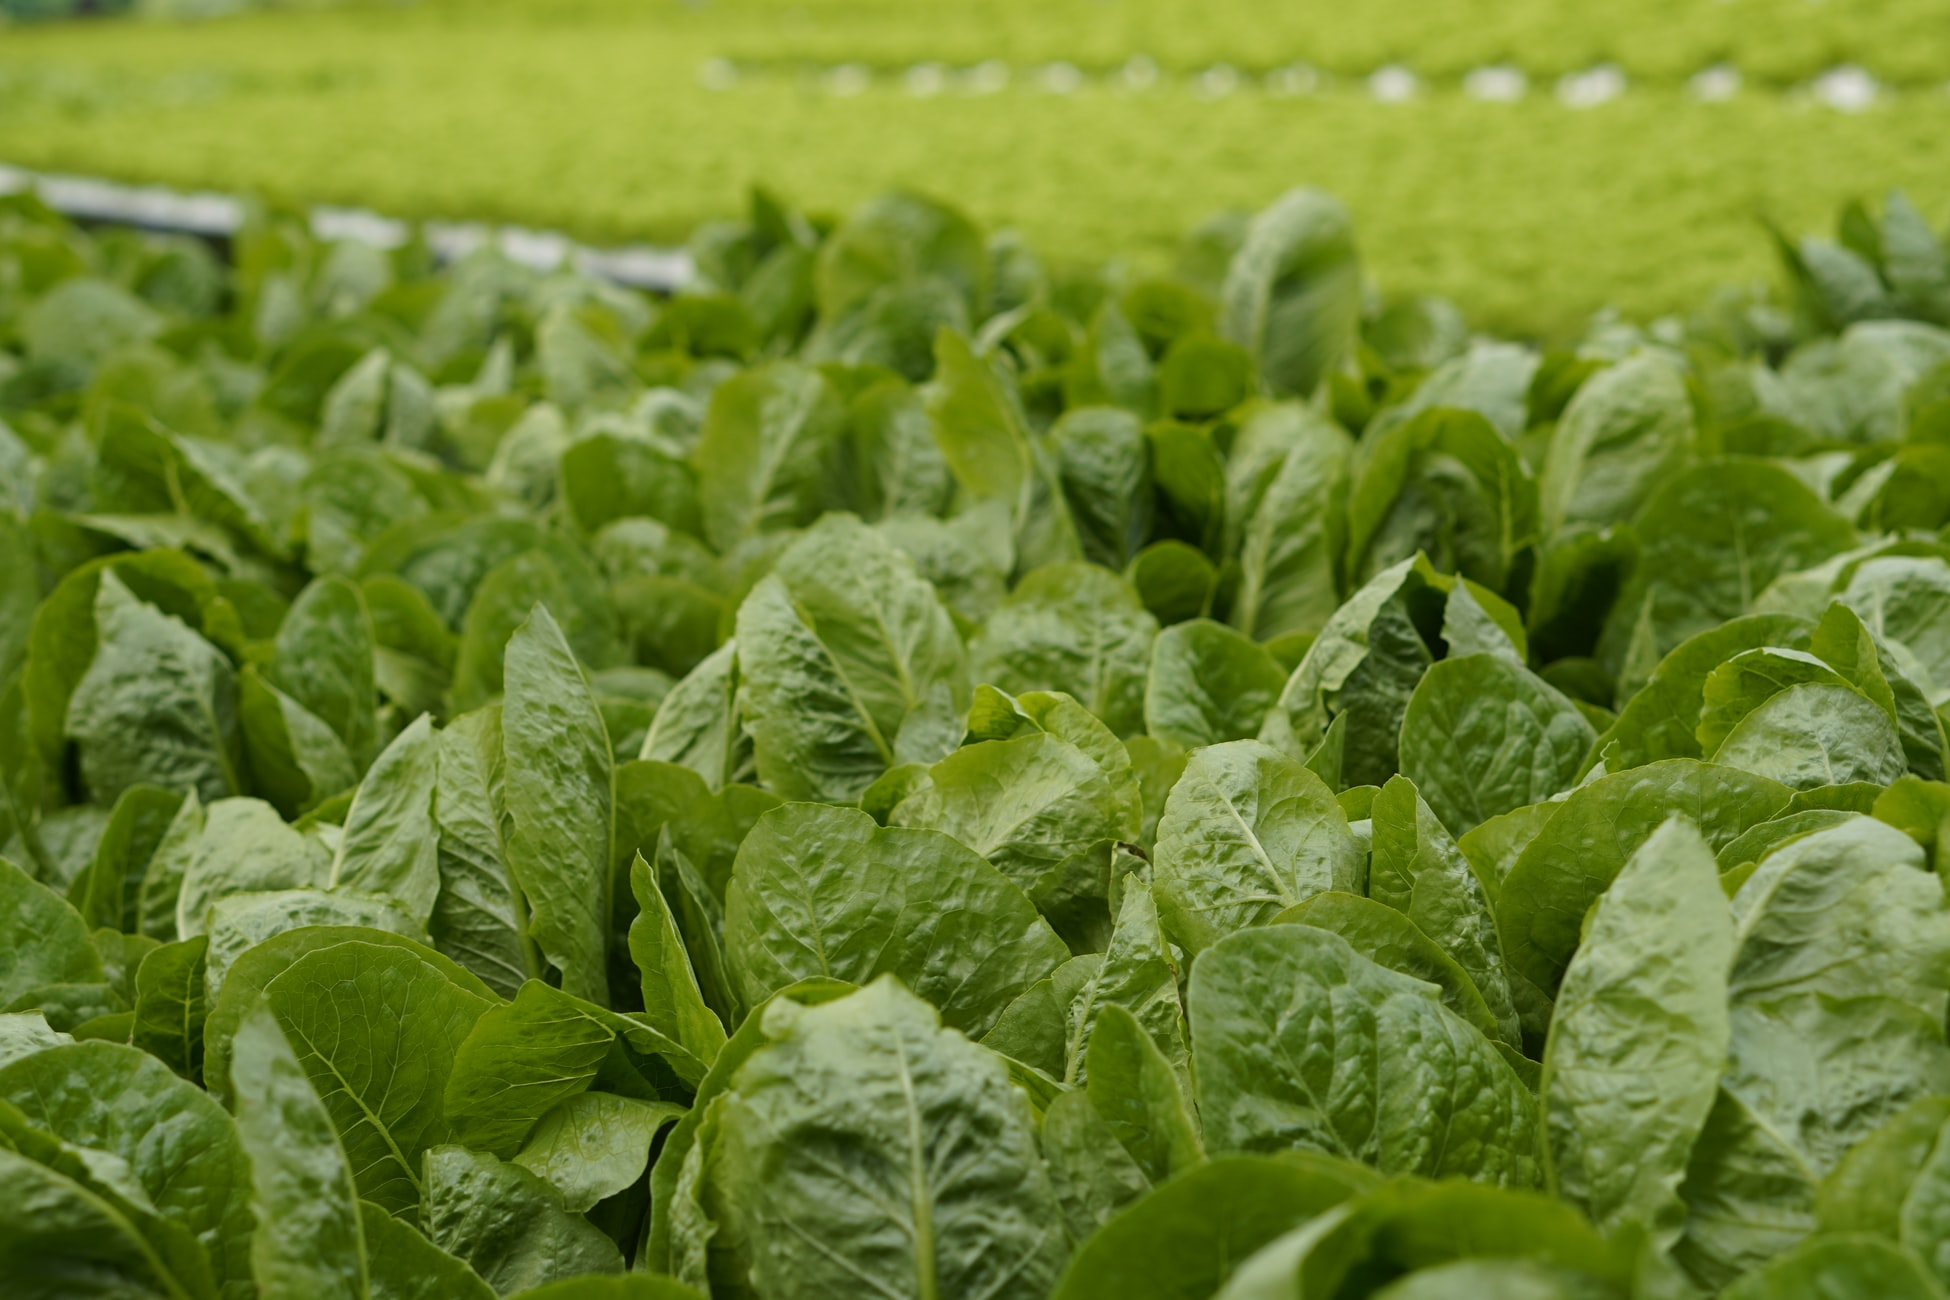 field full of spinach leaves